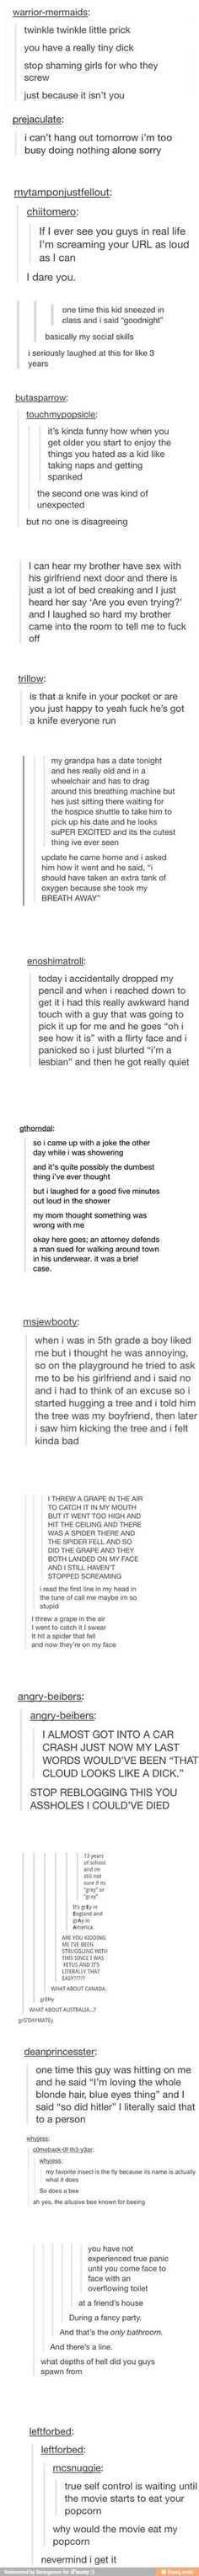 Im in love with this, i laughed too hard at some of these: